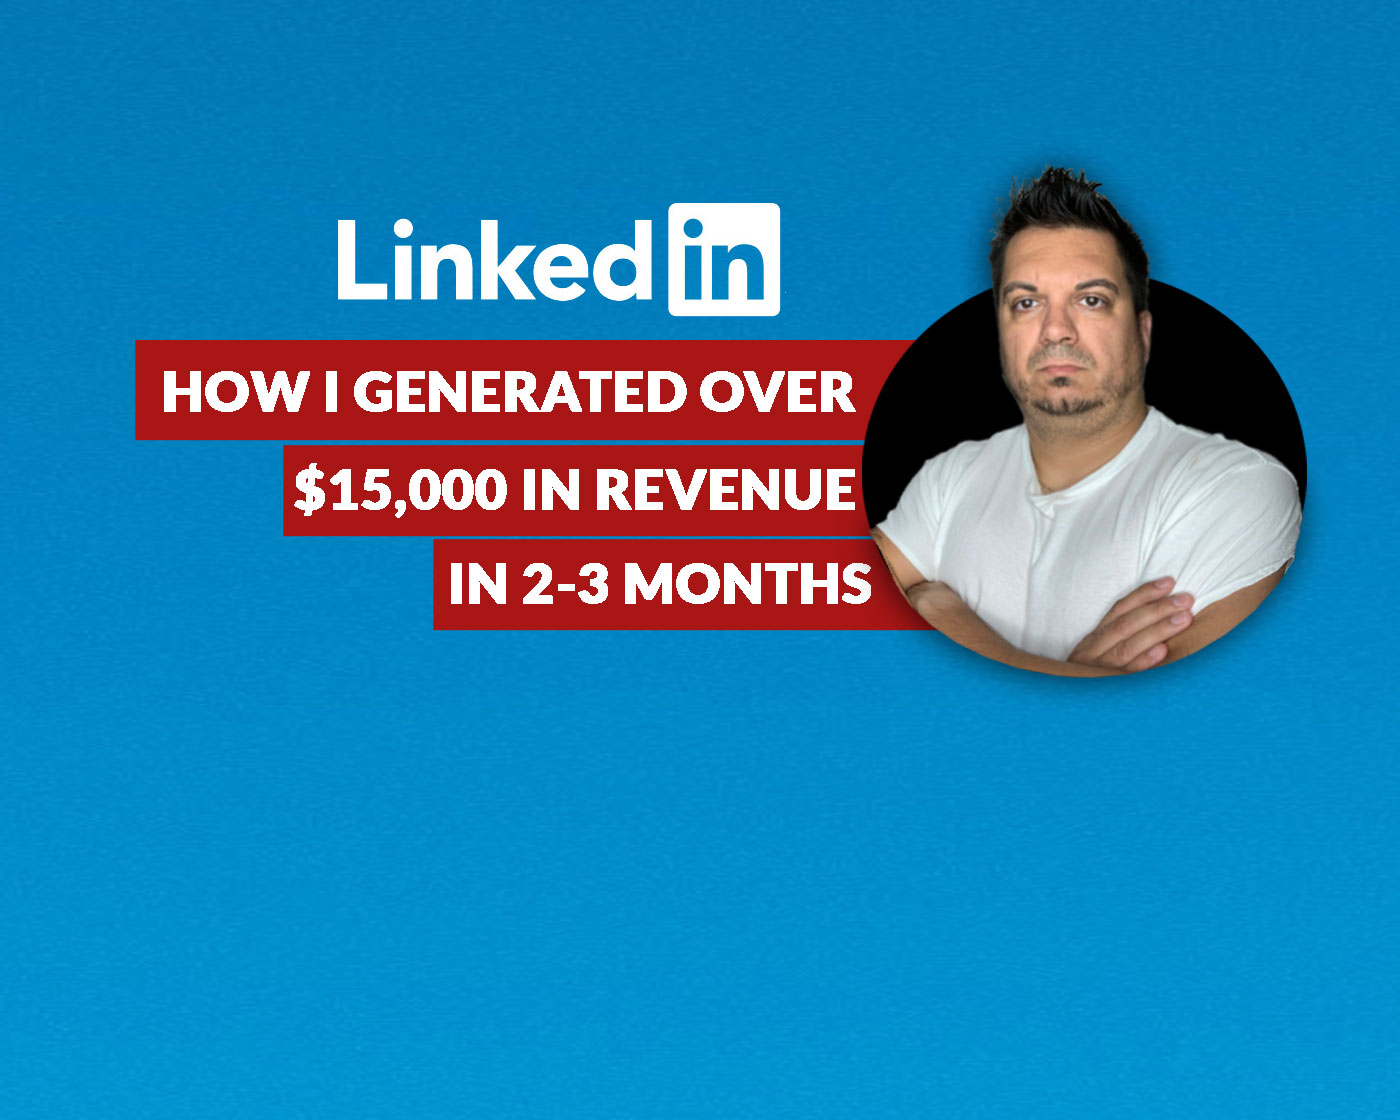 How I generated over $15,000 in revenue on LinkedIn in 2-3 months